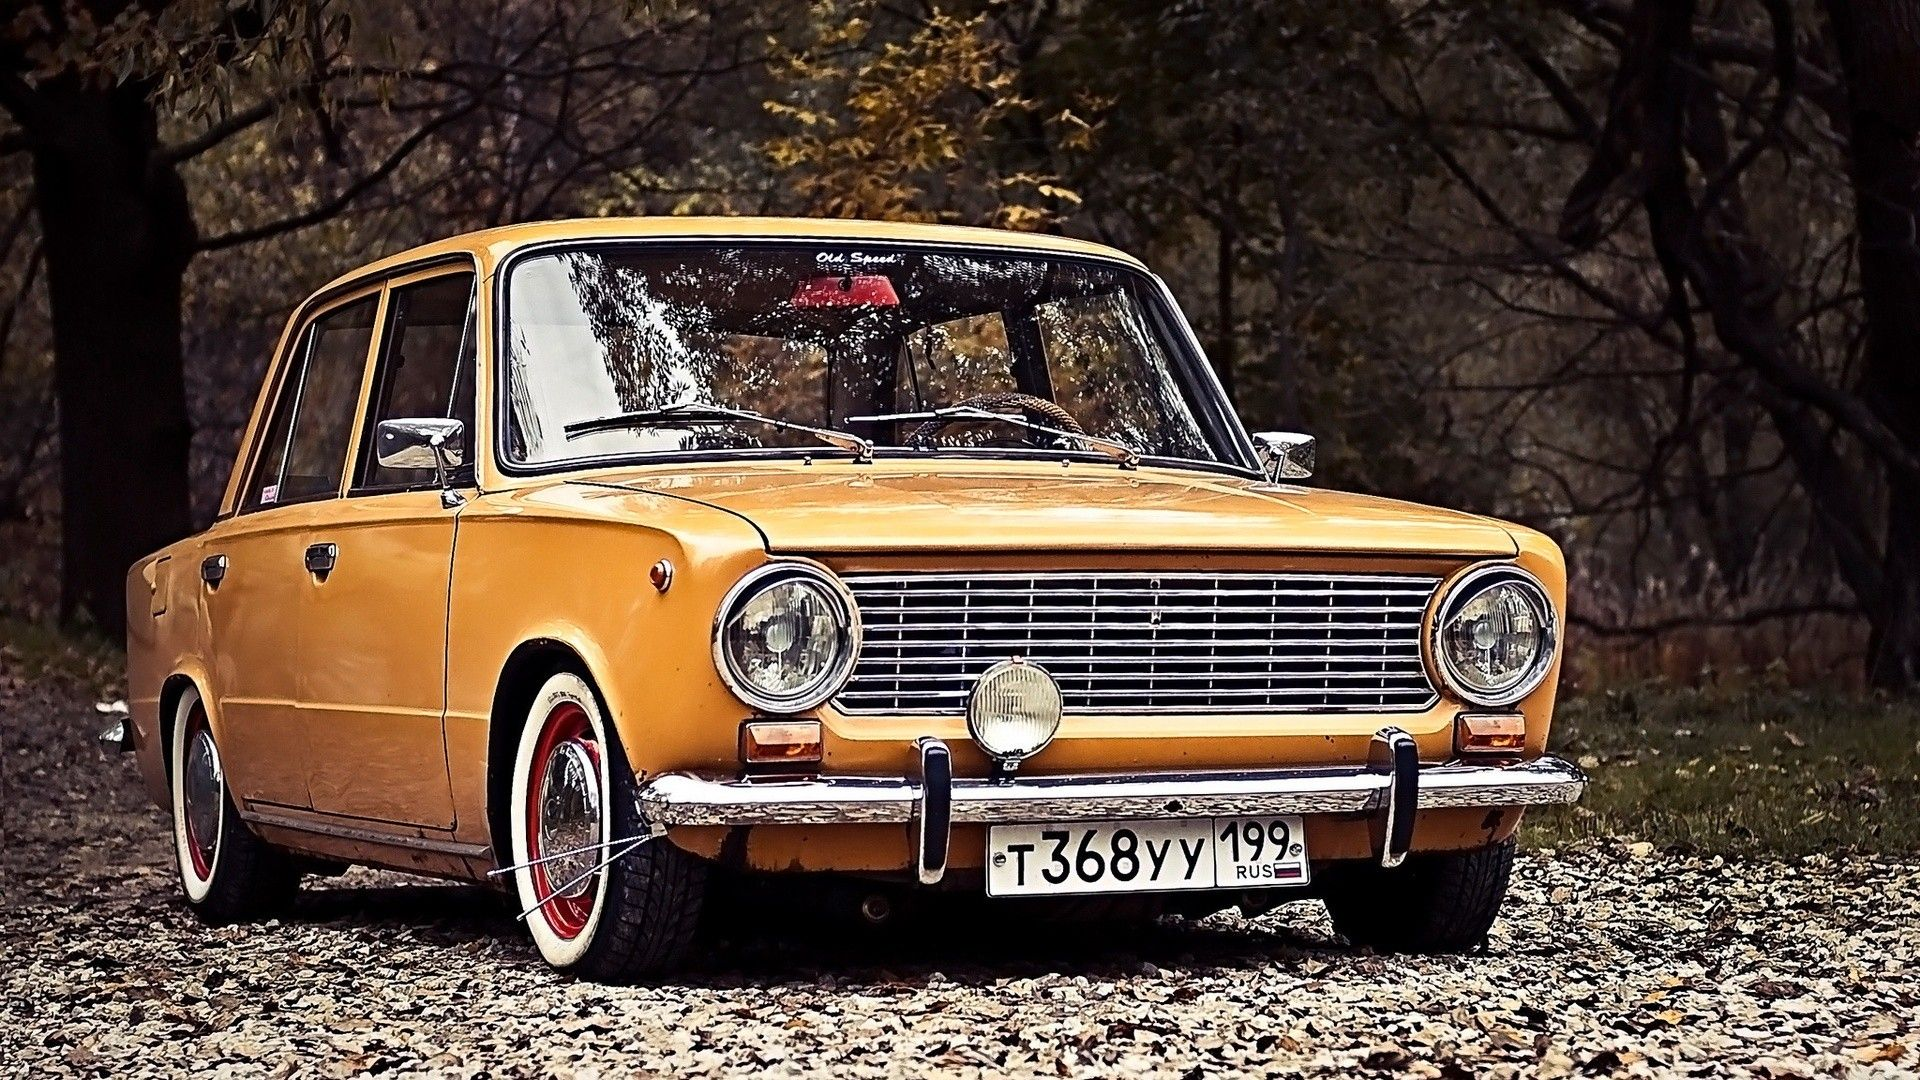 Old Car Wallpaper | Cars | Pinterest | Cars, Car wallpapers and Fiat